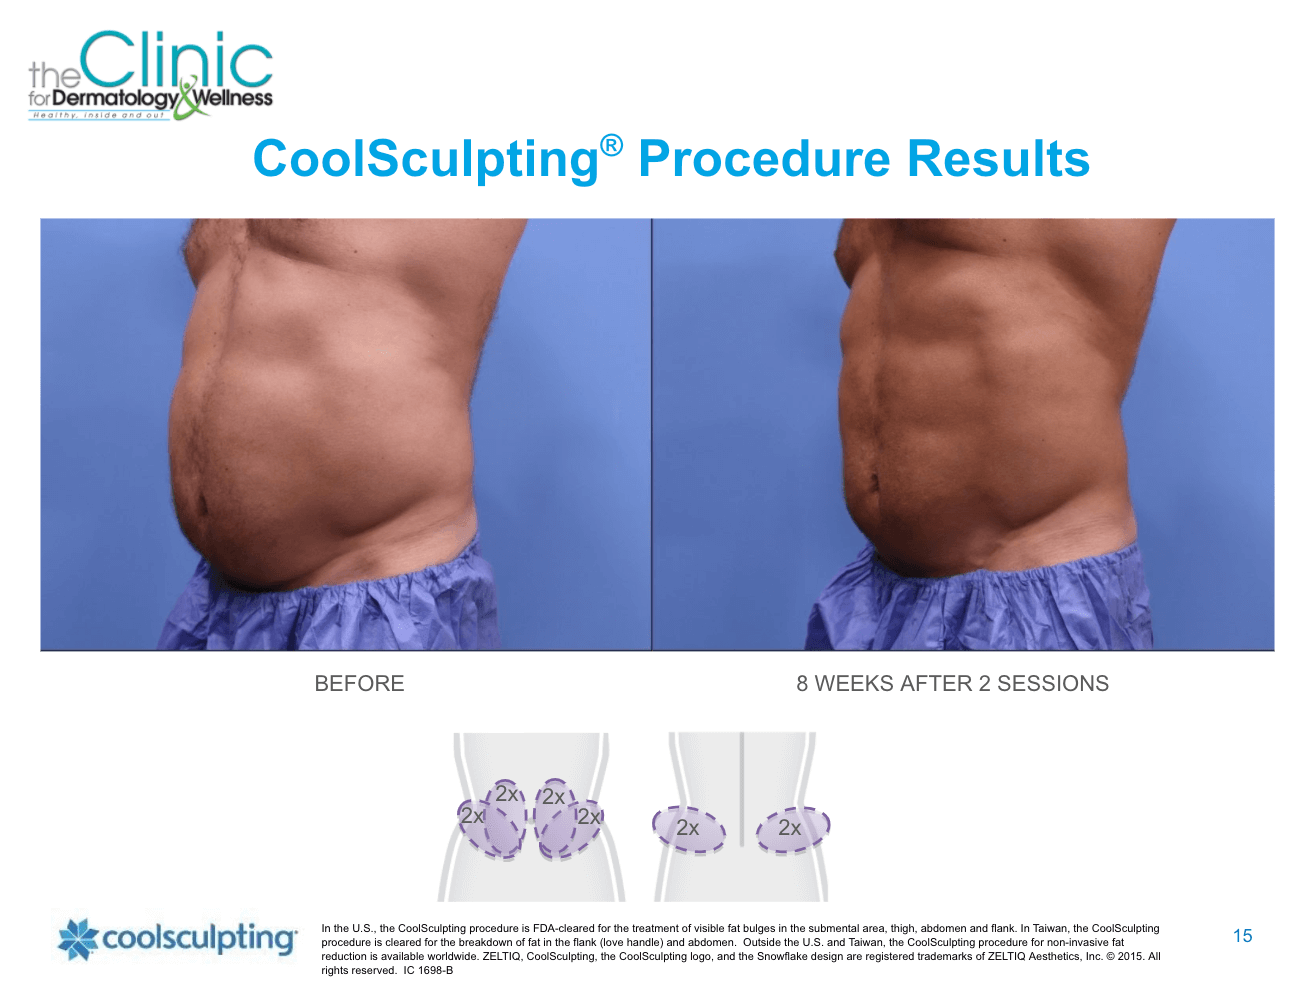 CoolSculpting before and after images